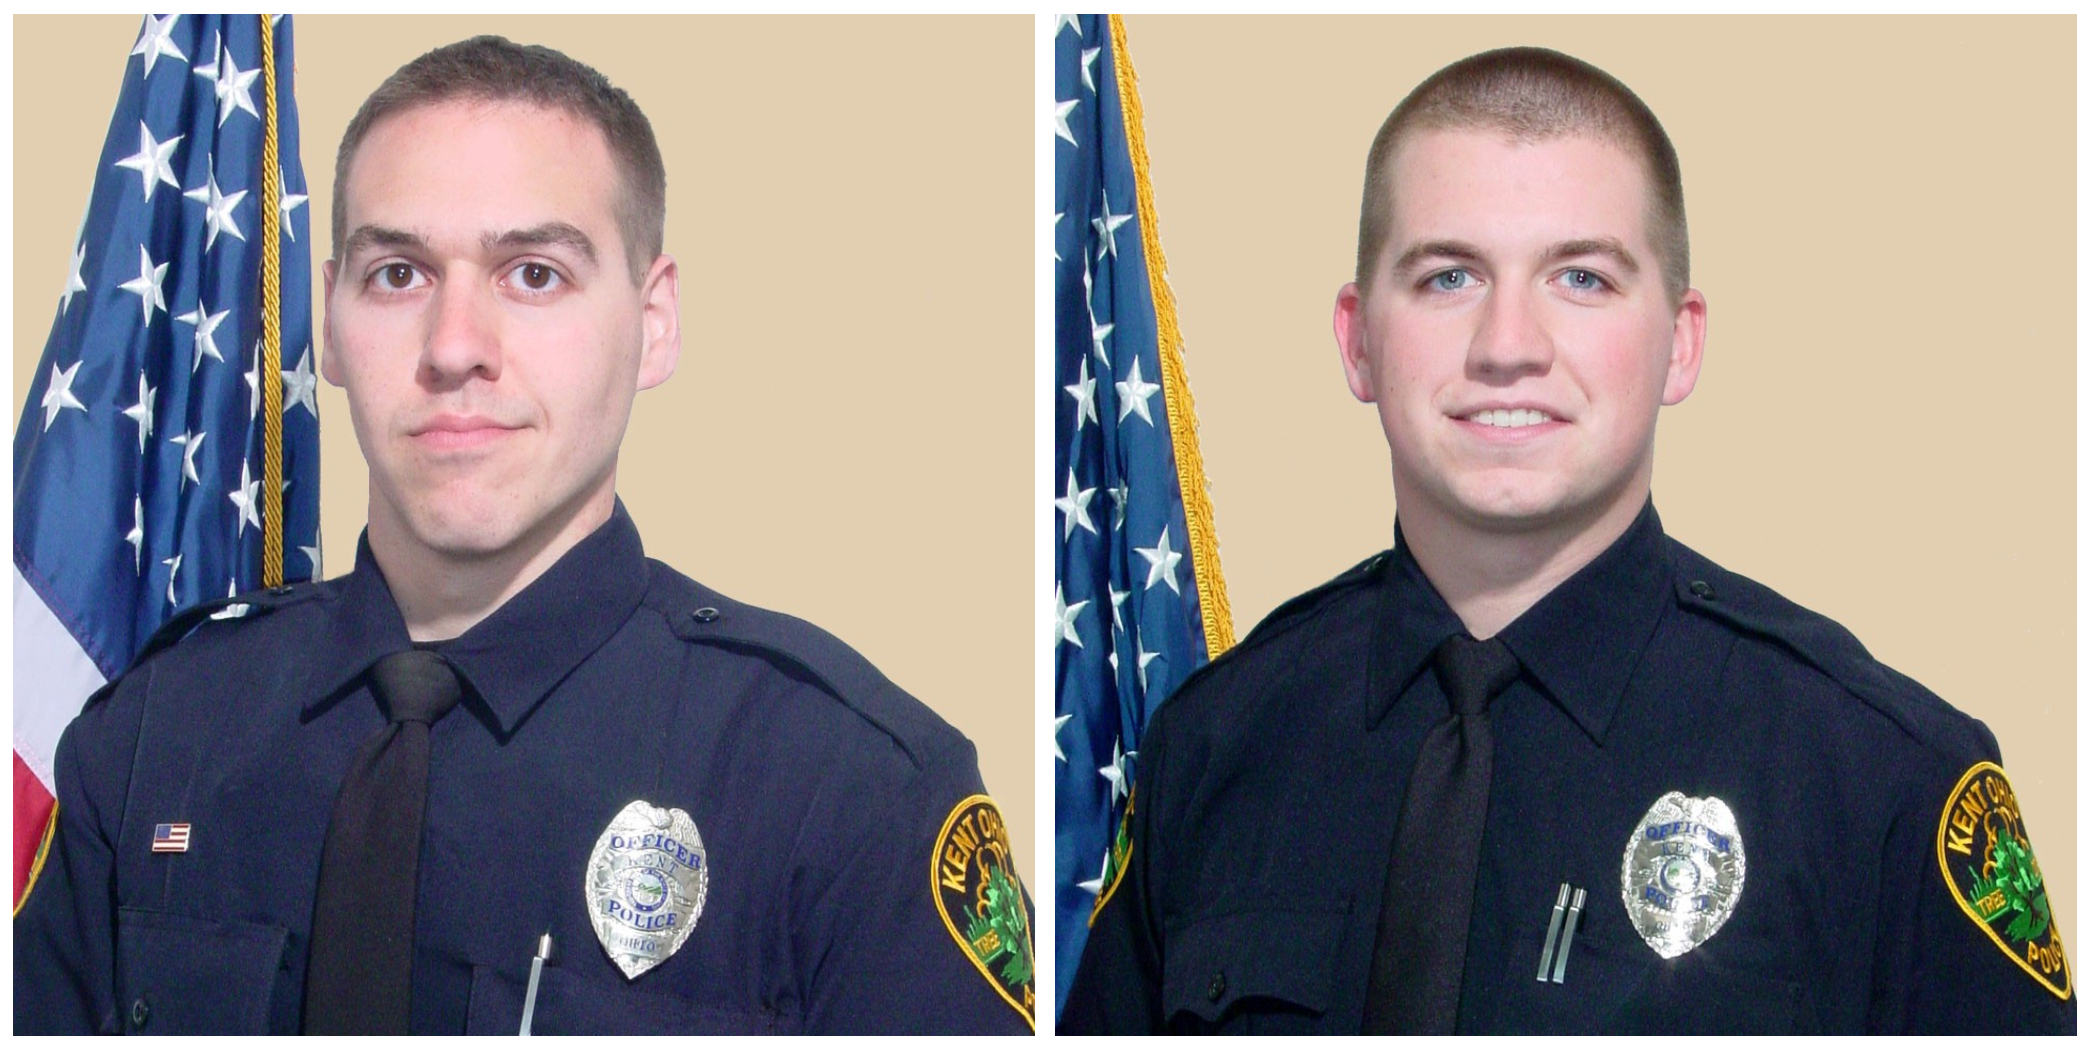 Officers Rescue 14 Year Old Babysitter And Infant From Armed Home Invader By Michael Indriolo The Portager Medium